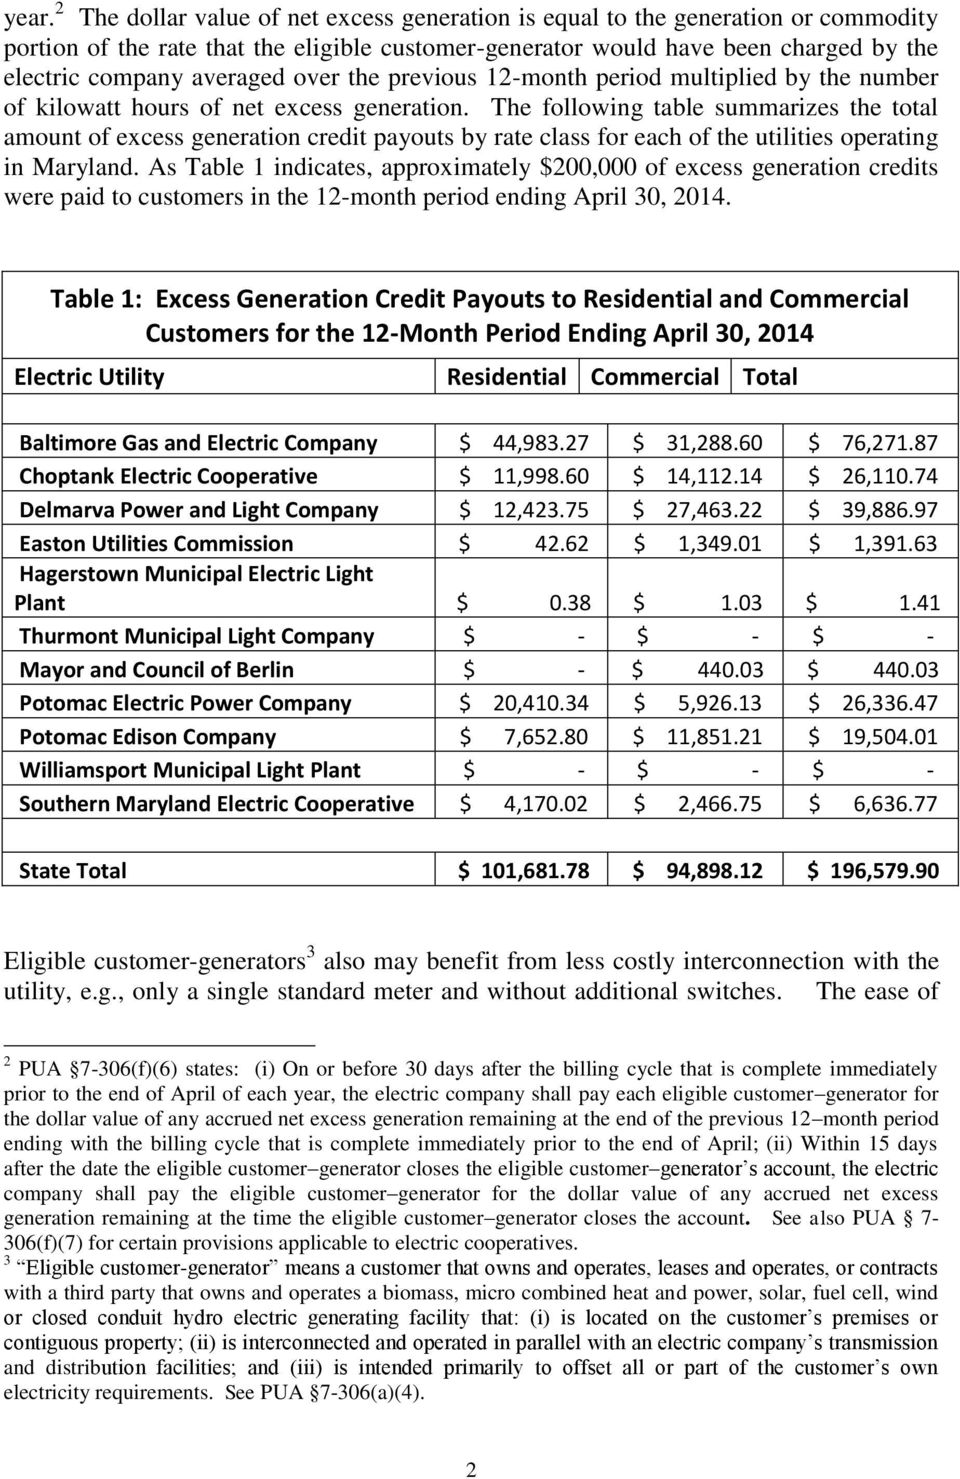 The following table summarizes the total amount of excess generation credit payouts by rate class for each of the utilities operating in Maryland.